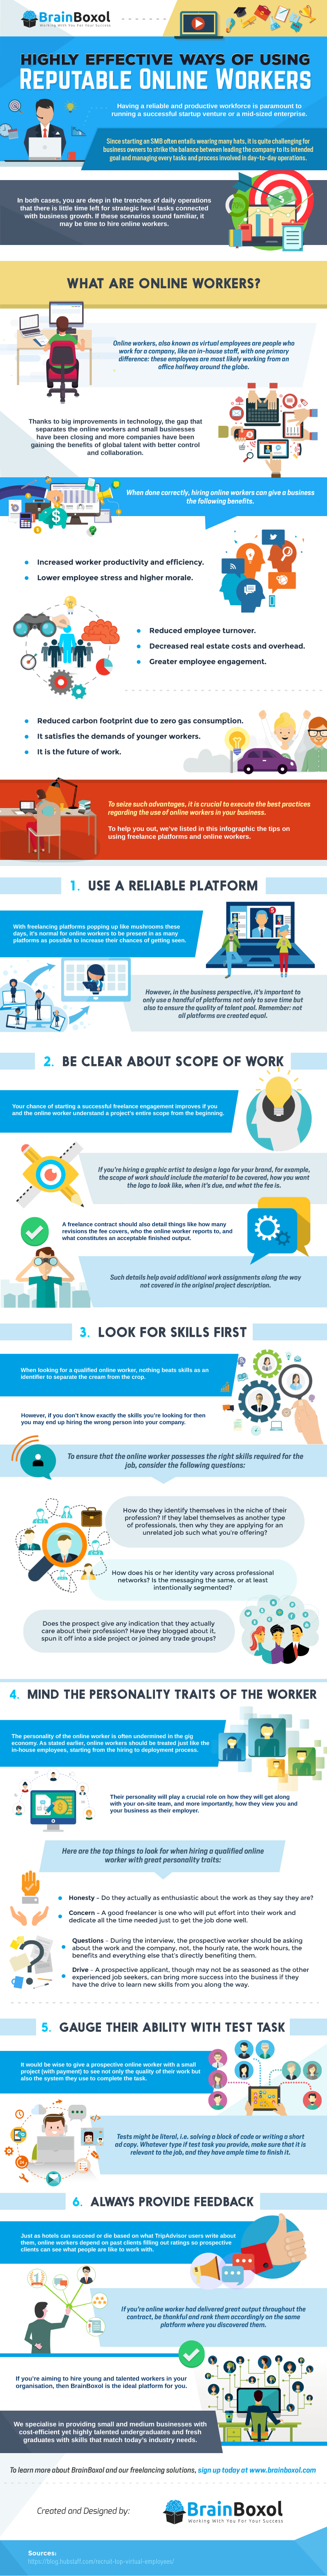 Highly Effective Ways of Using Reputable Online Workers - #Infographic